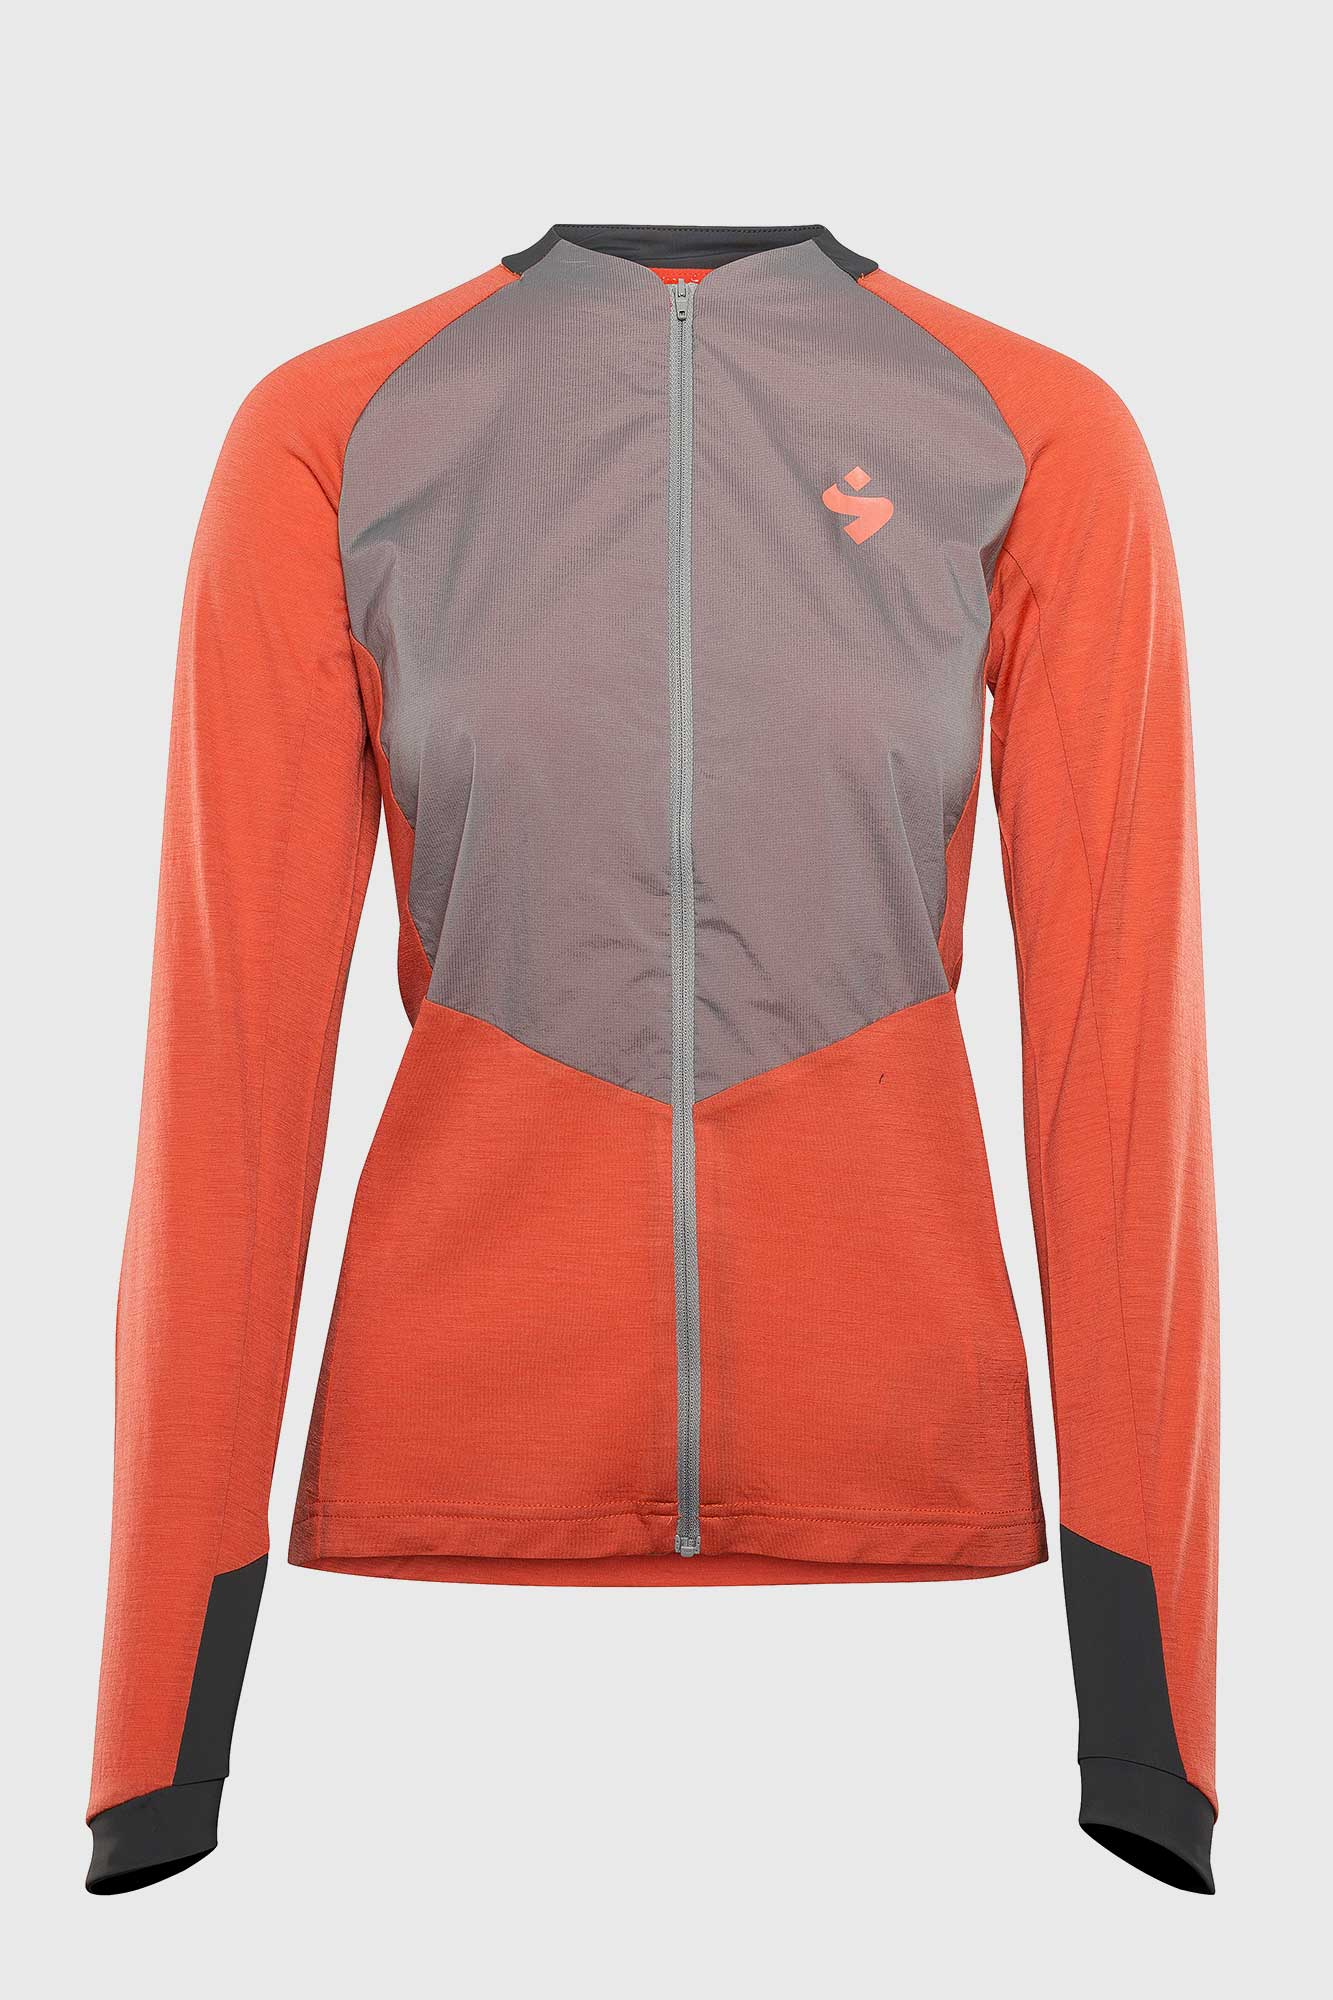 Womens Hunter FZ Wind Merino Coral Jersey